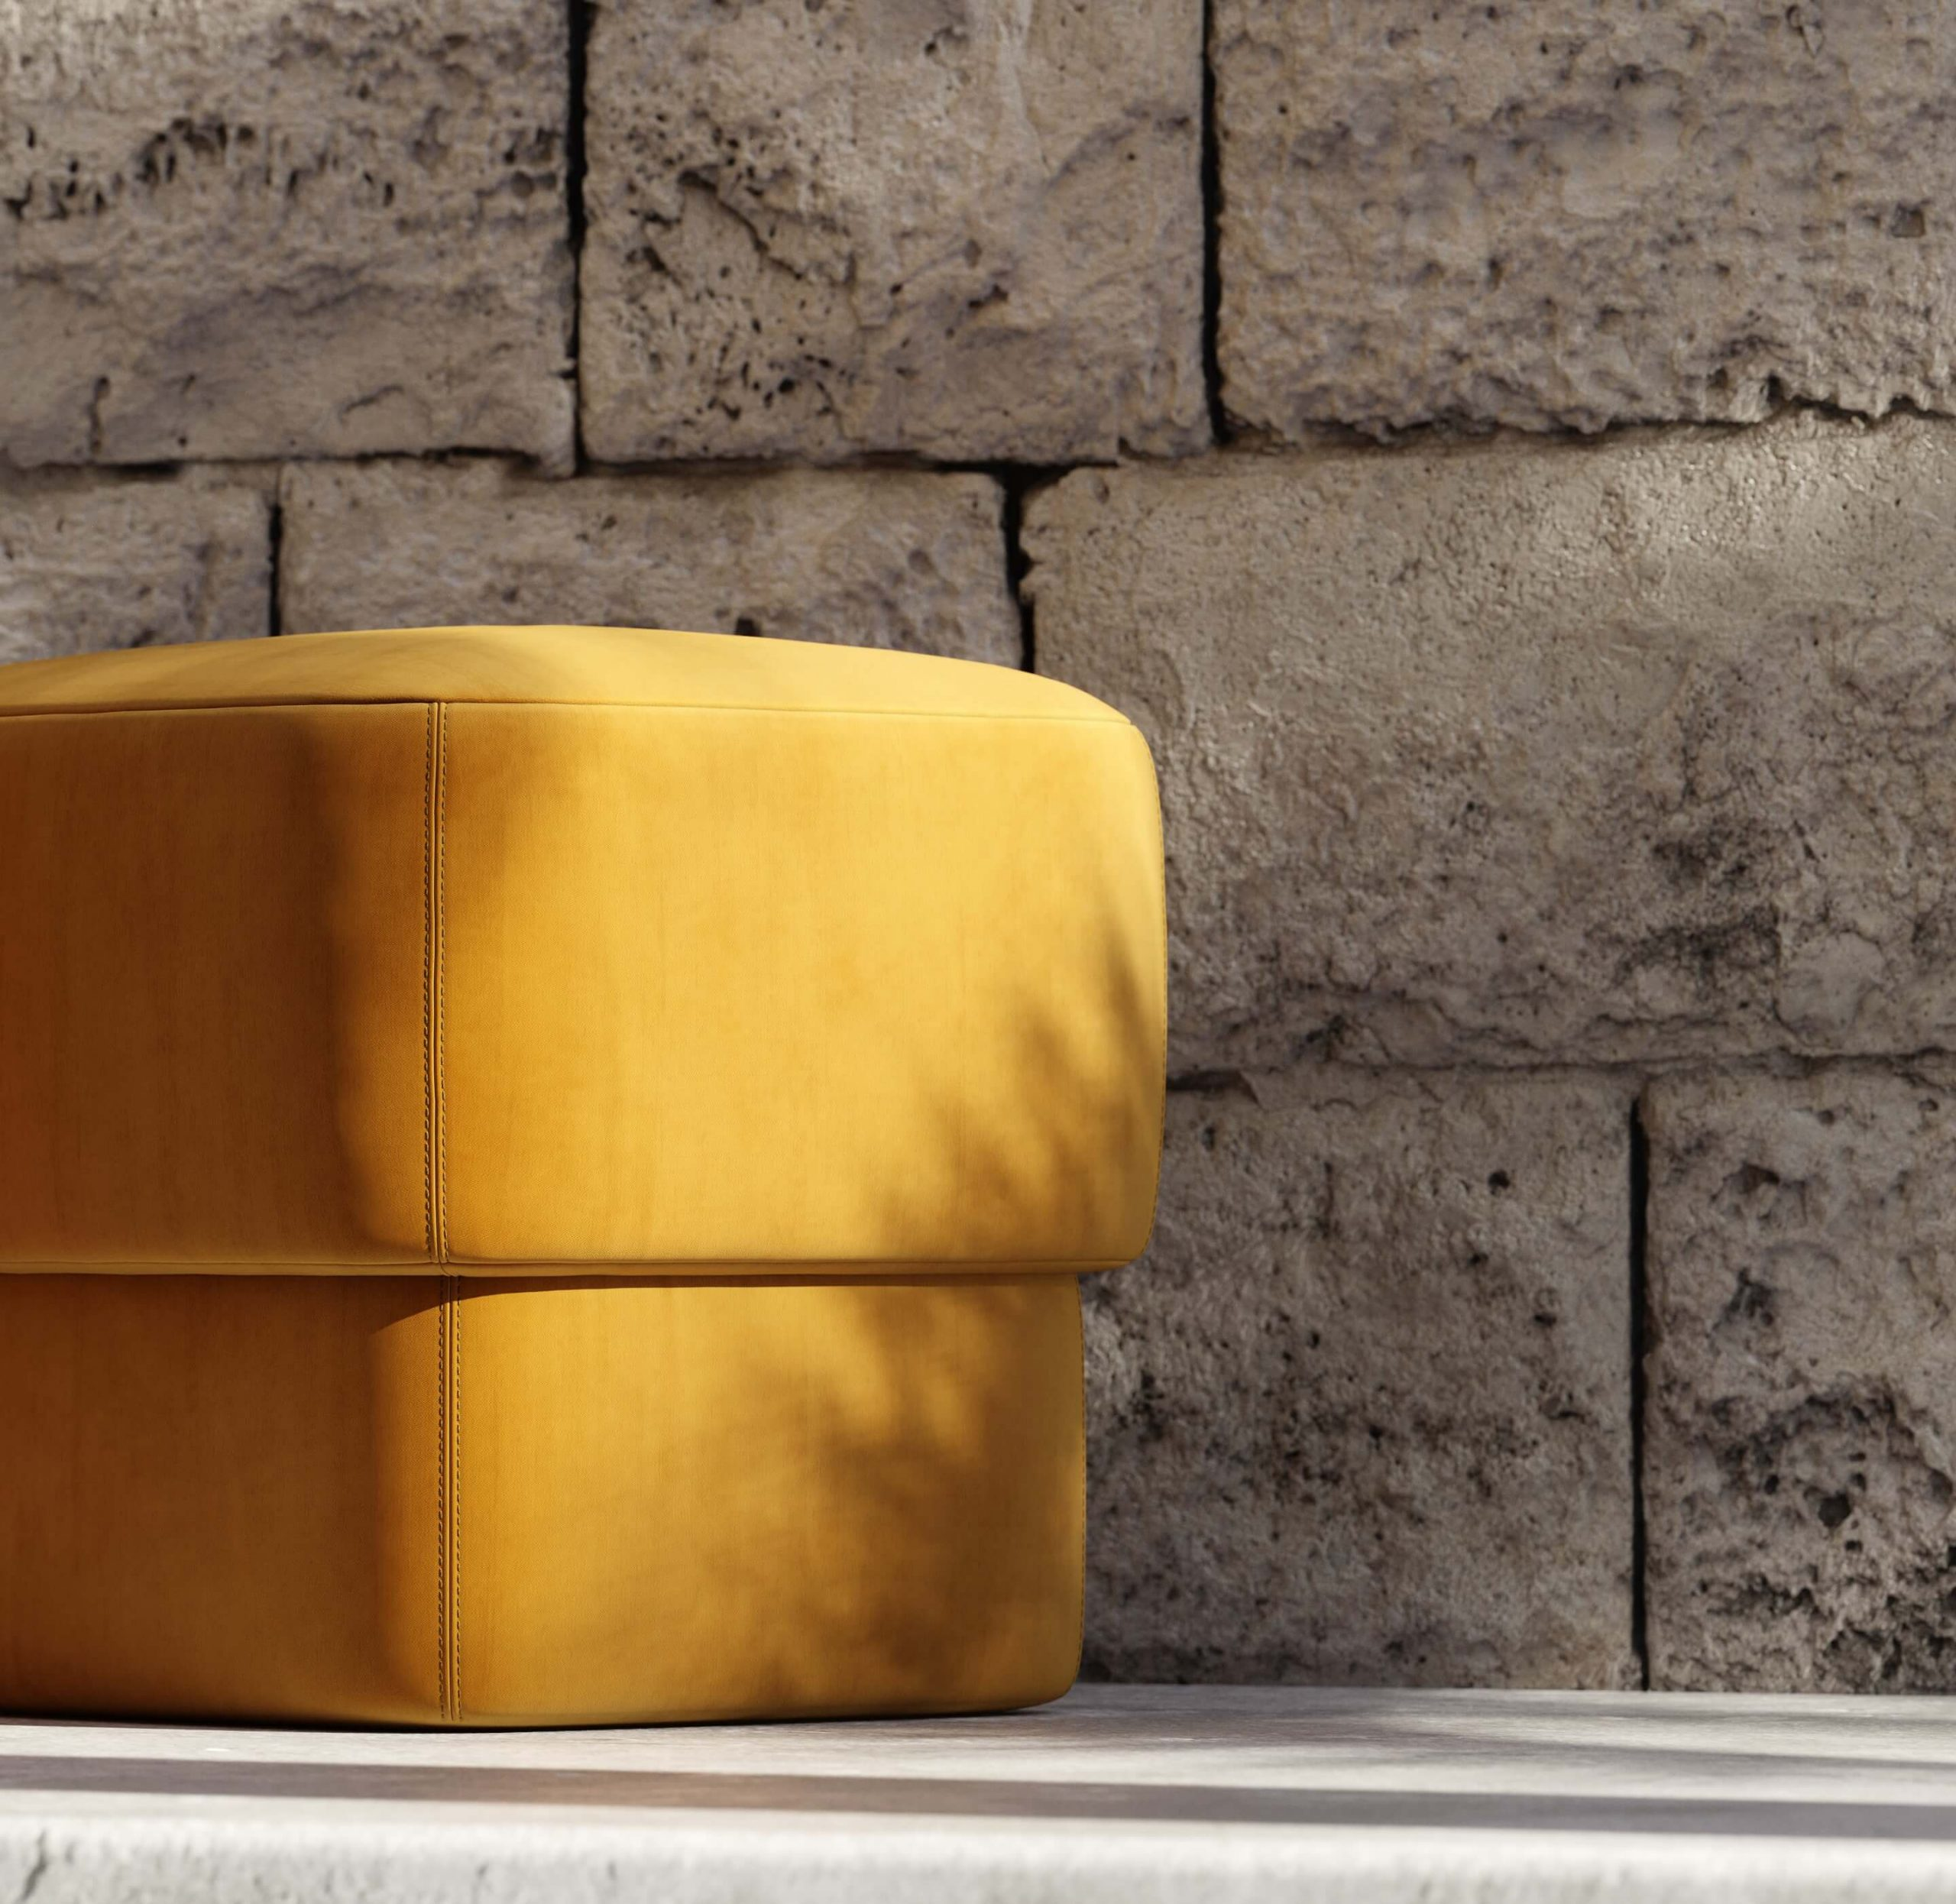 kate-s-pouf-strool-yellow-velvet-seating-piece-accessory-casegood-domkapa-7